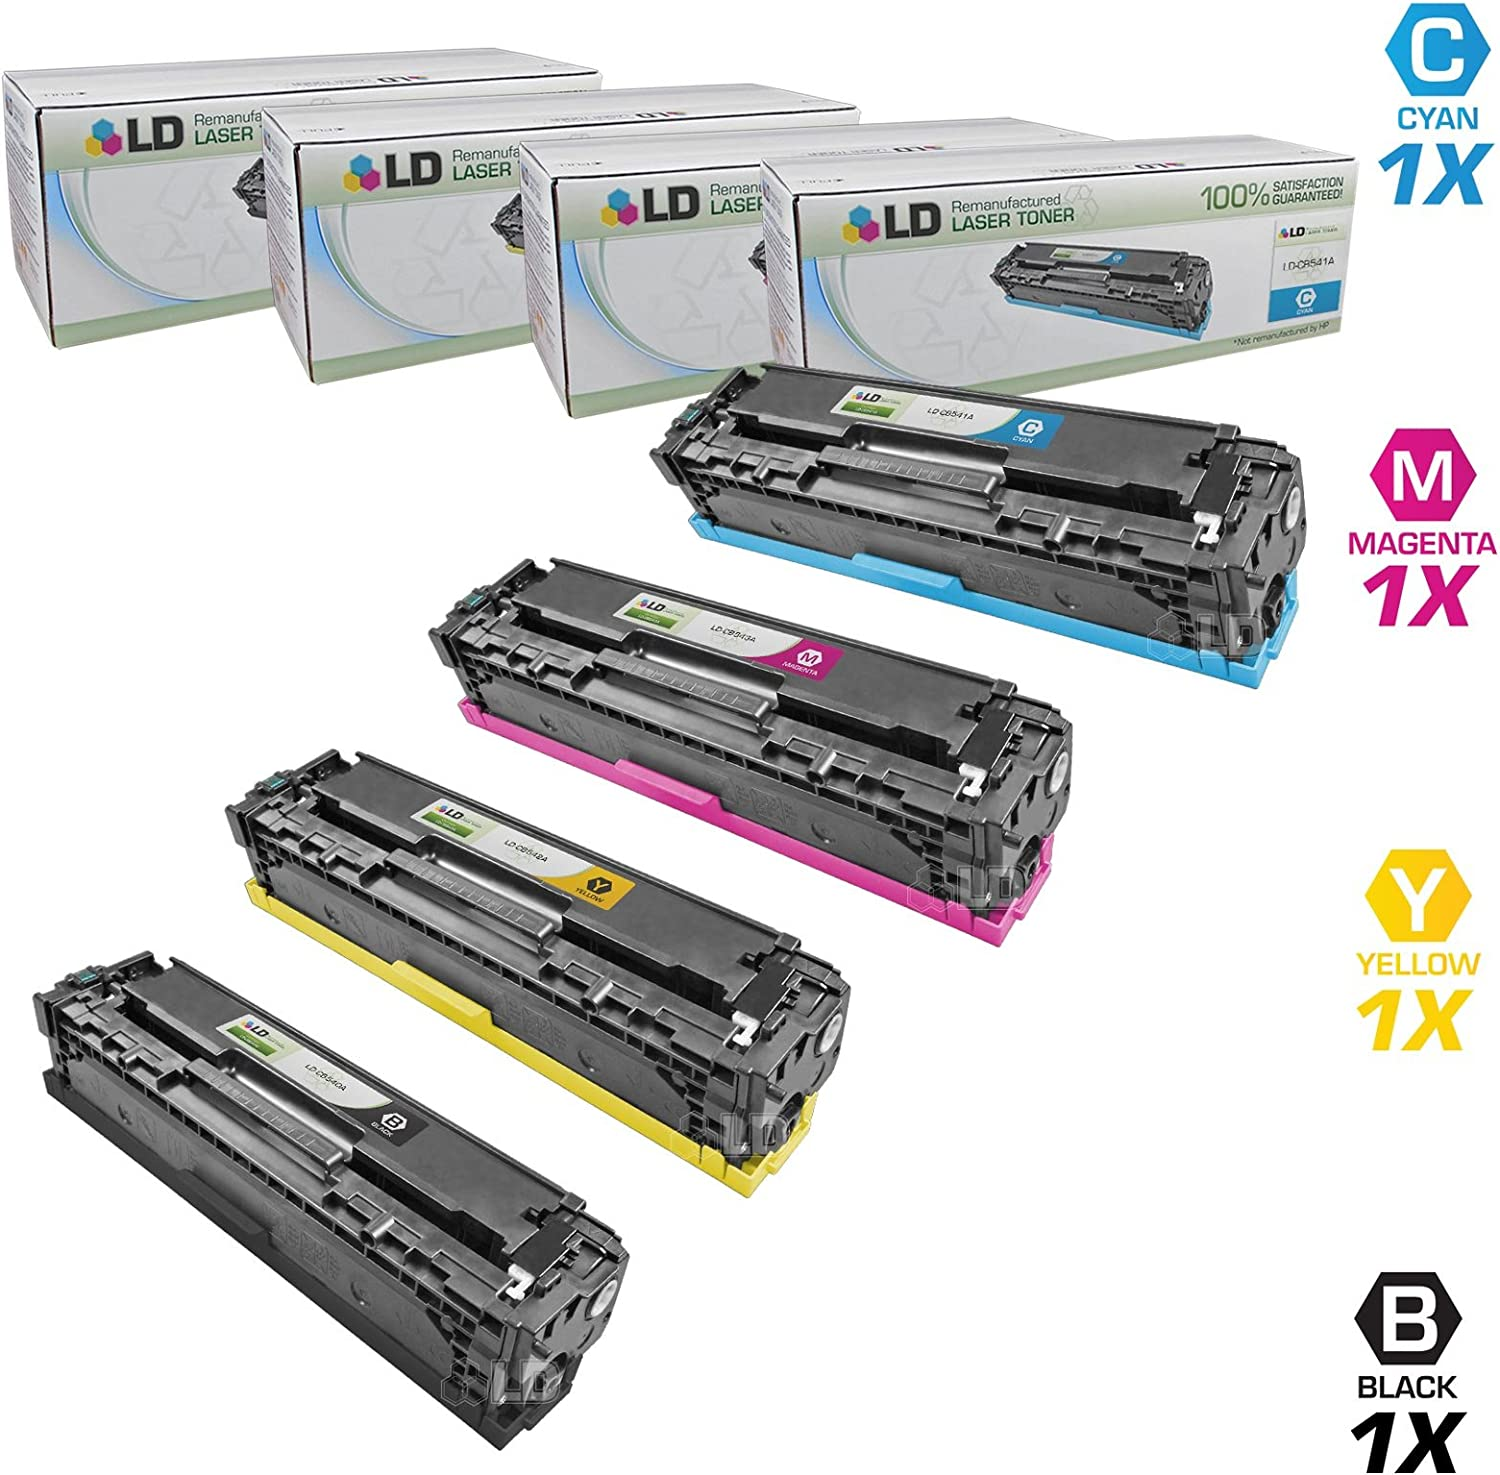 LD Remanufactured Toner Cartridge Replacement for HP 125A (Black, Cyan, Magenta, Yellow, 4-Pack)